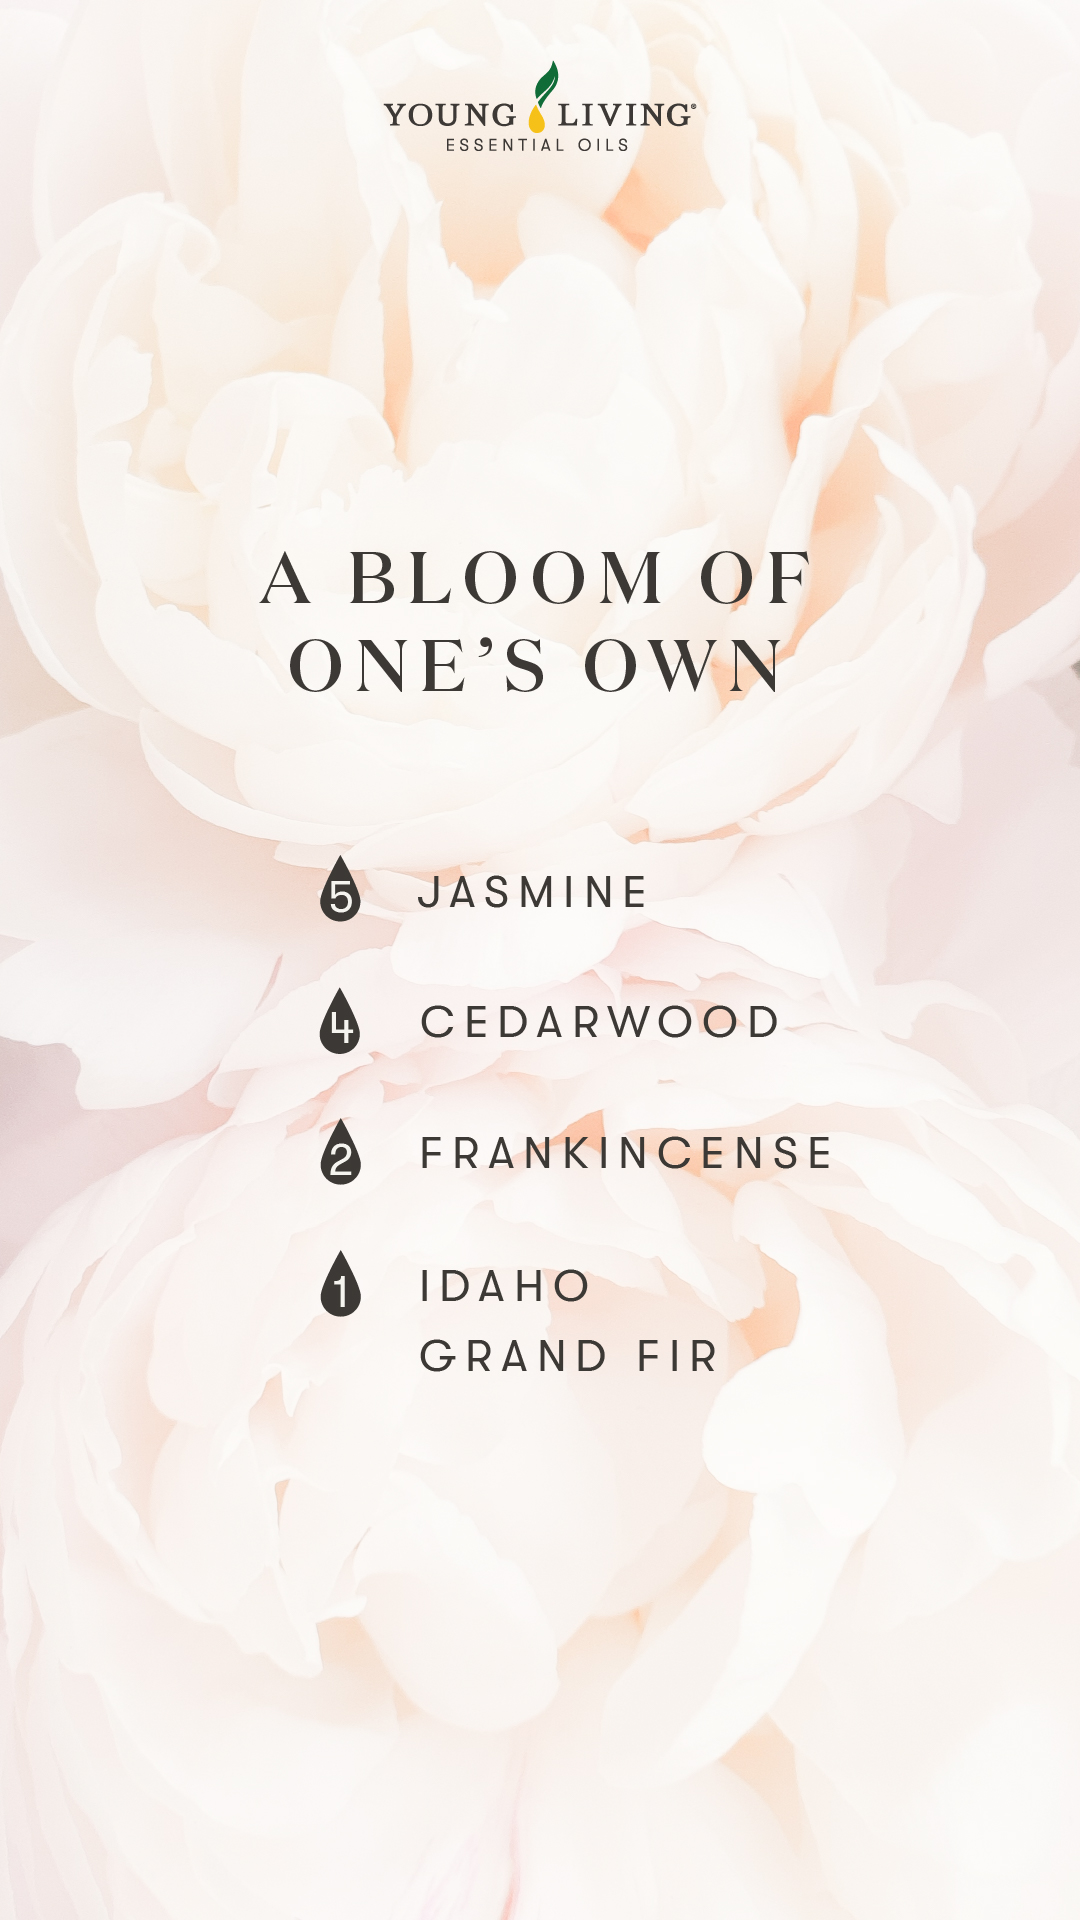 A bloom of one's own diffuser blend